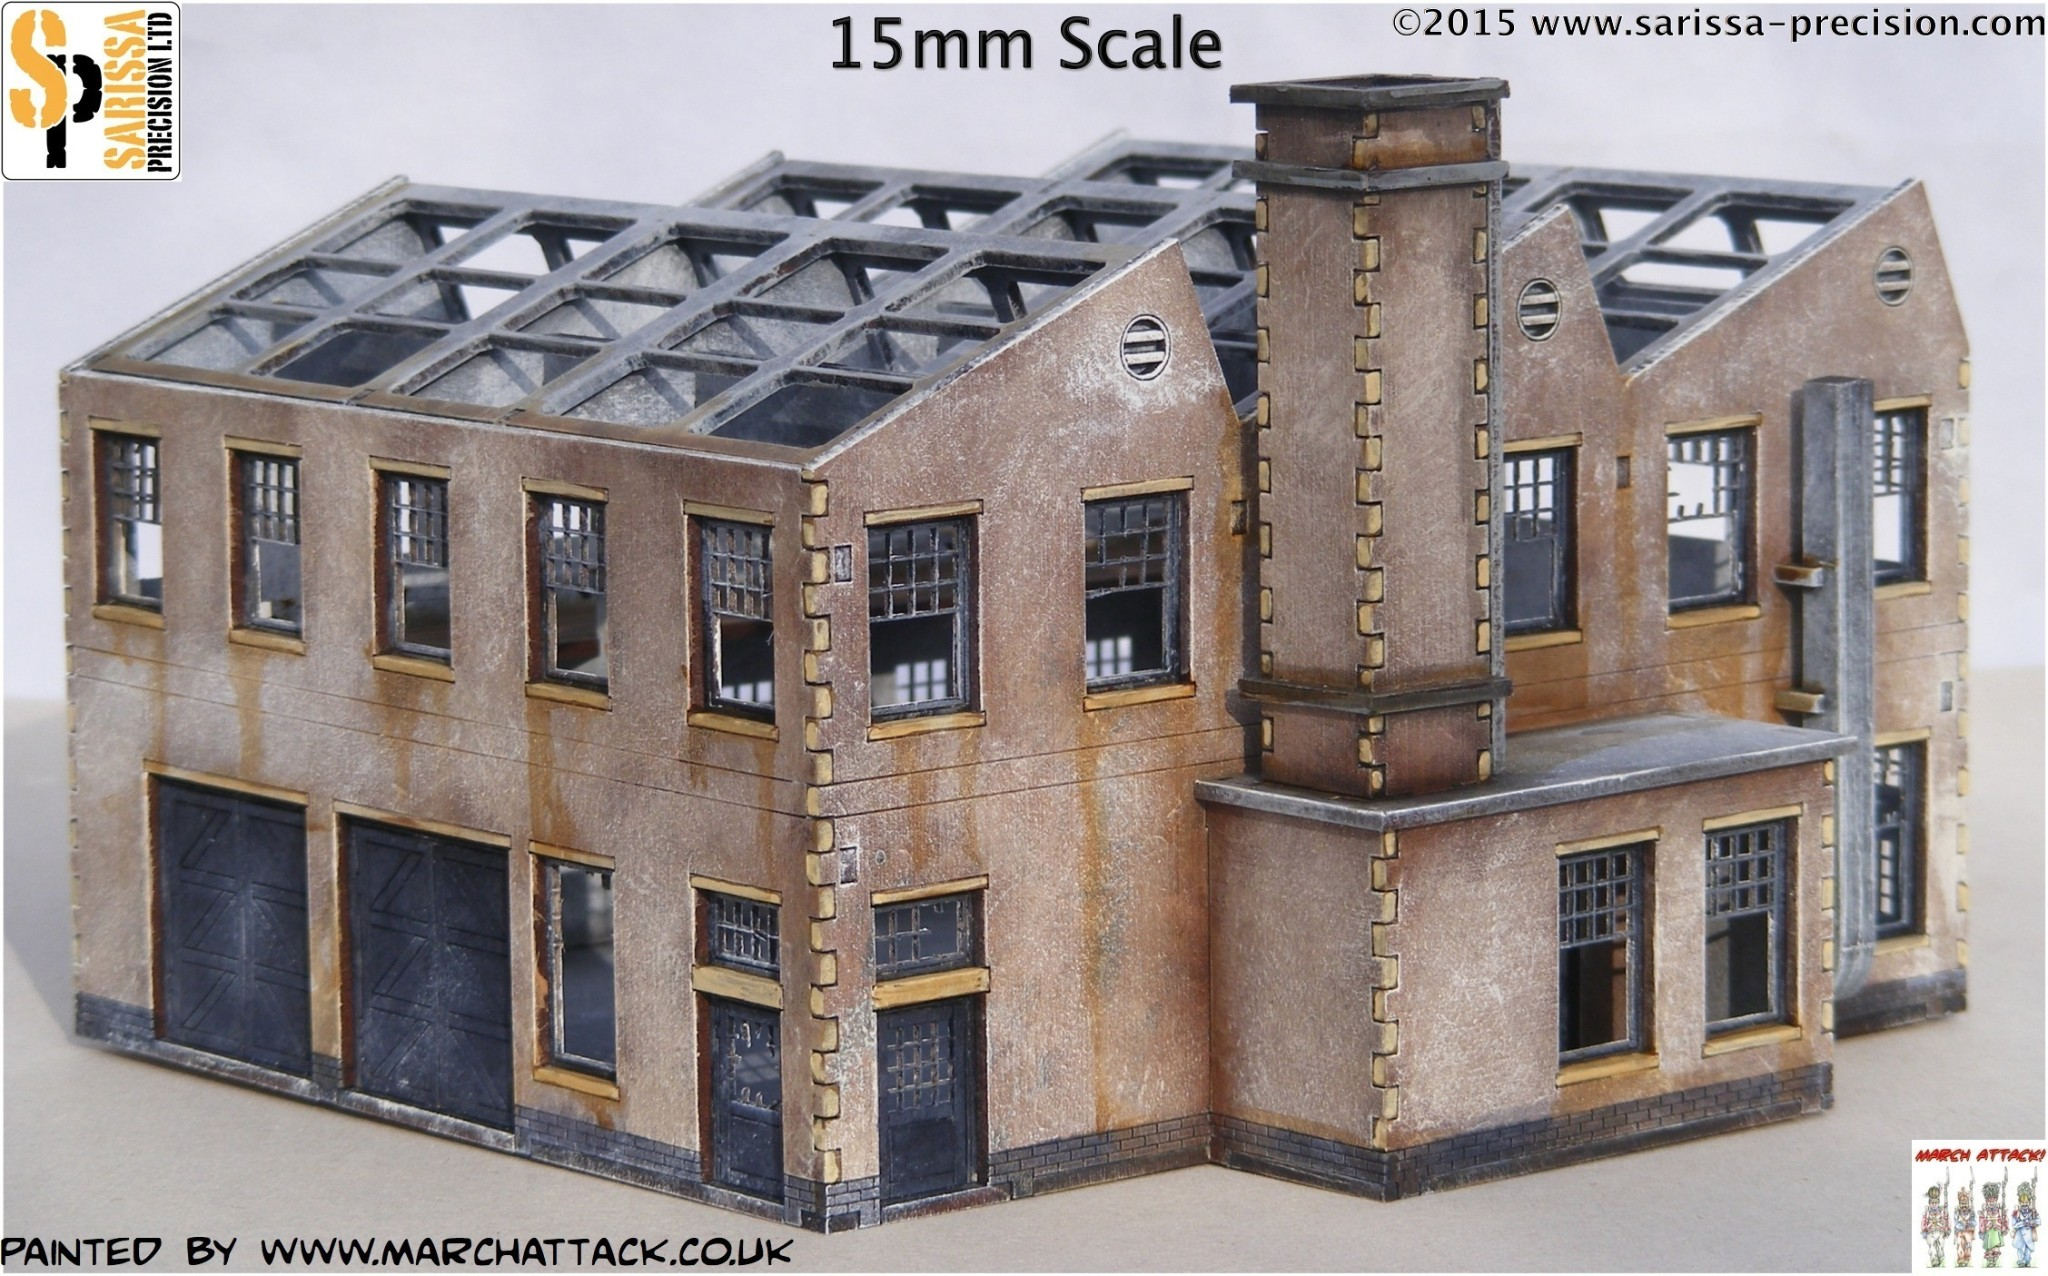 Sarissa Get Industrial With Buildings For 15mm & 28mm